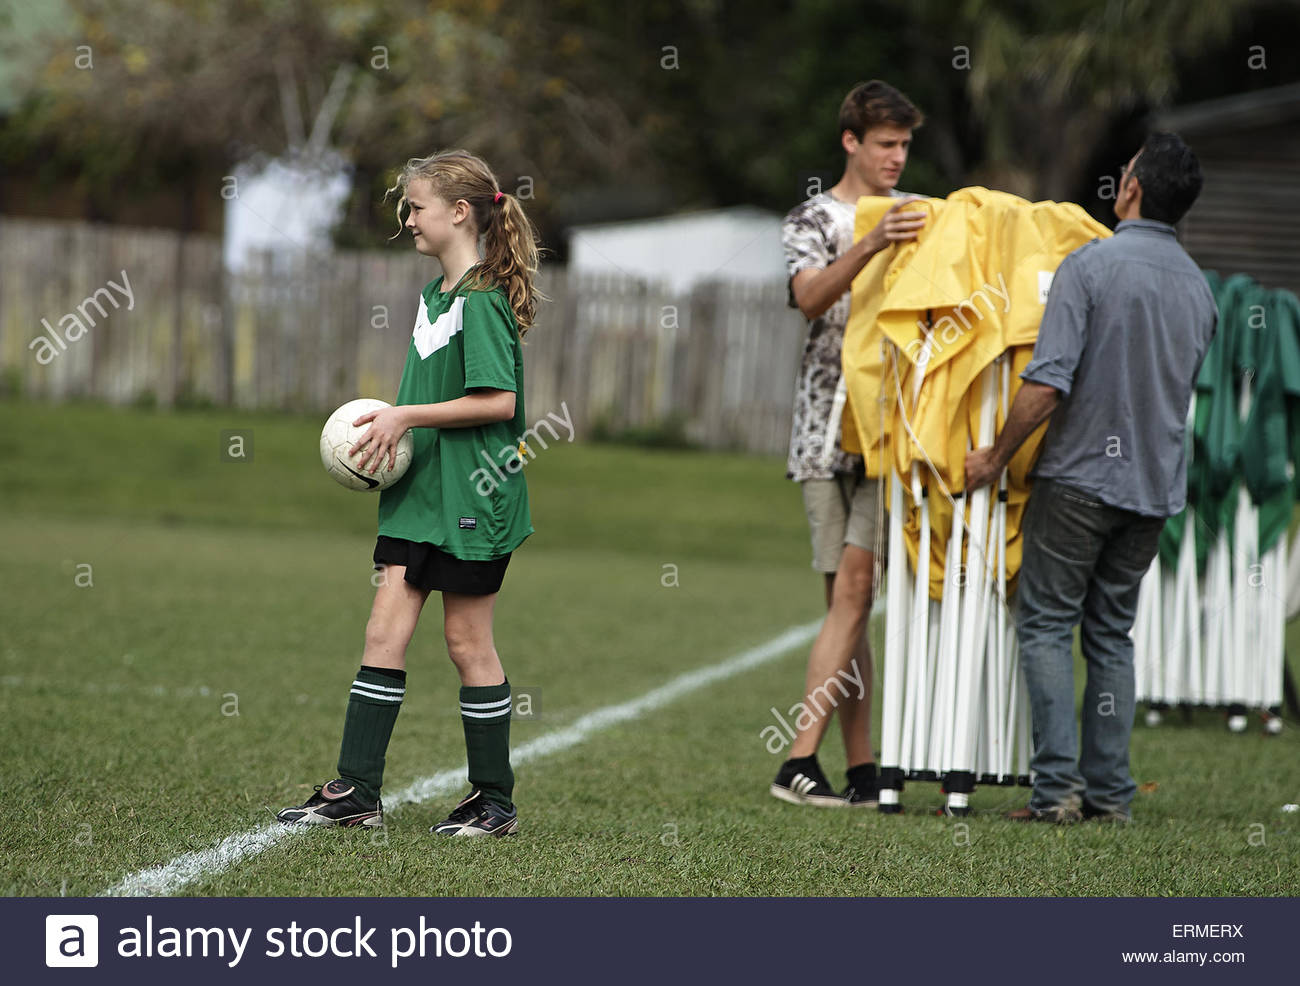 a girl prepares to take a throw in from the sideline, during a weekend football match at the Nimbin Headers soccer - Stock Image